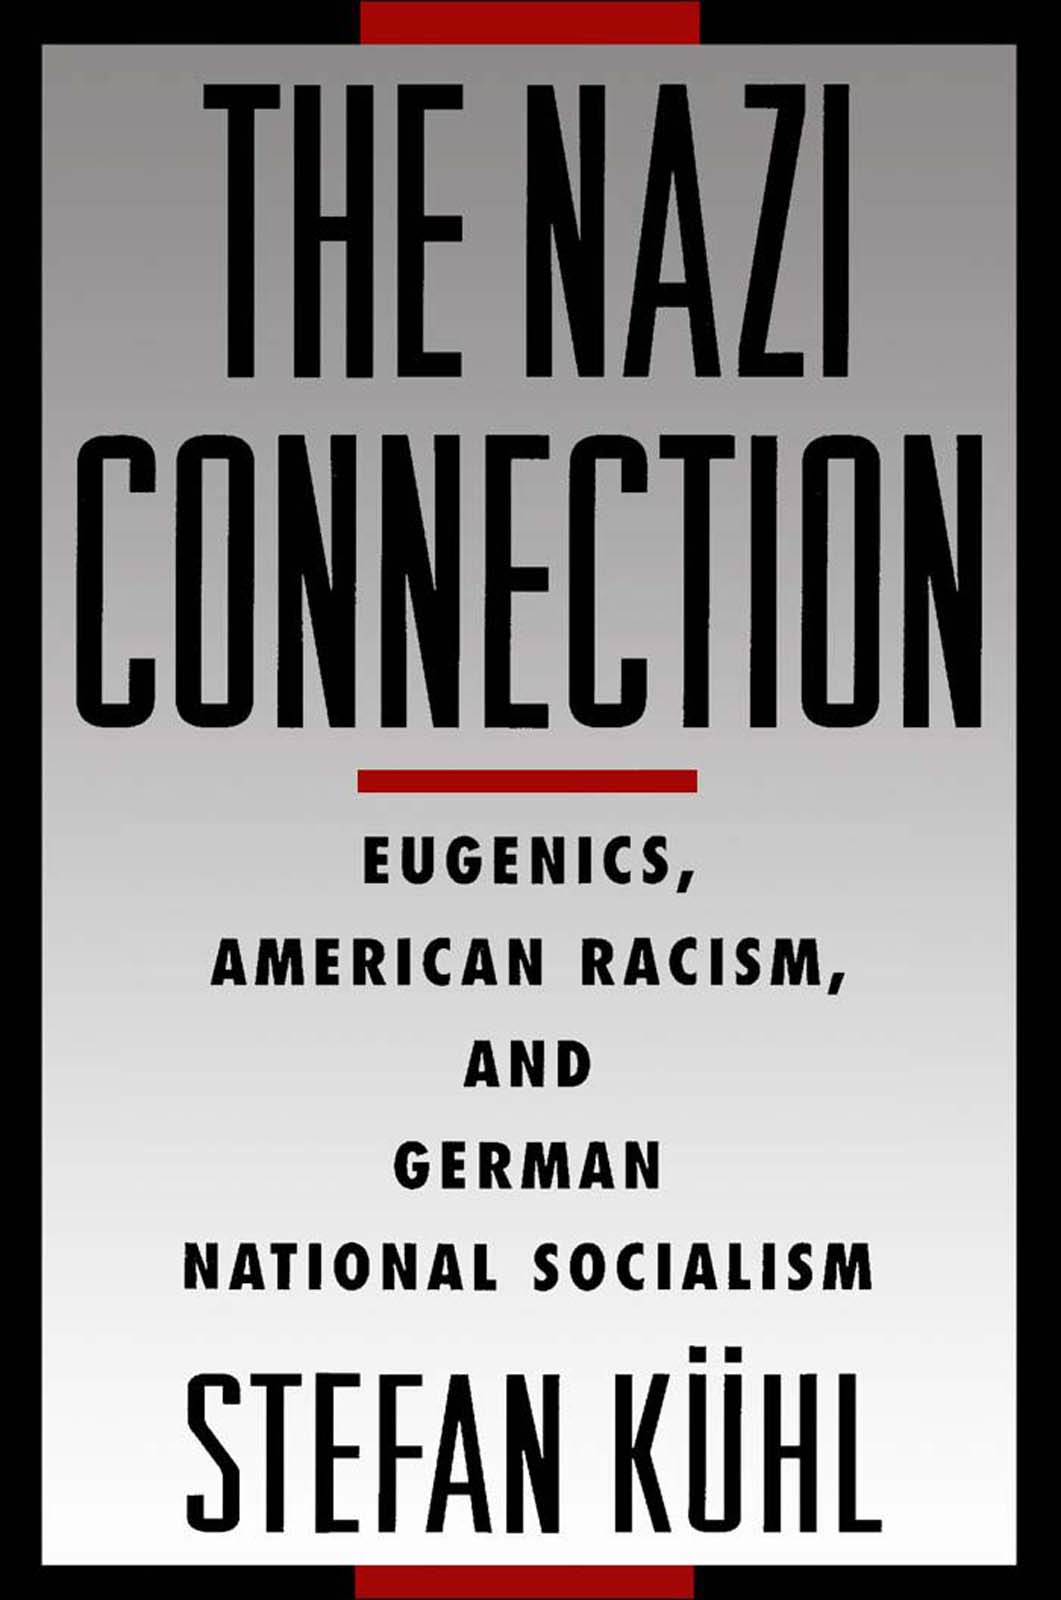 The Nazi Connection:Eugenics, American Racism, and German National Socialism